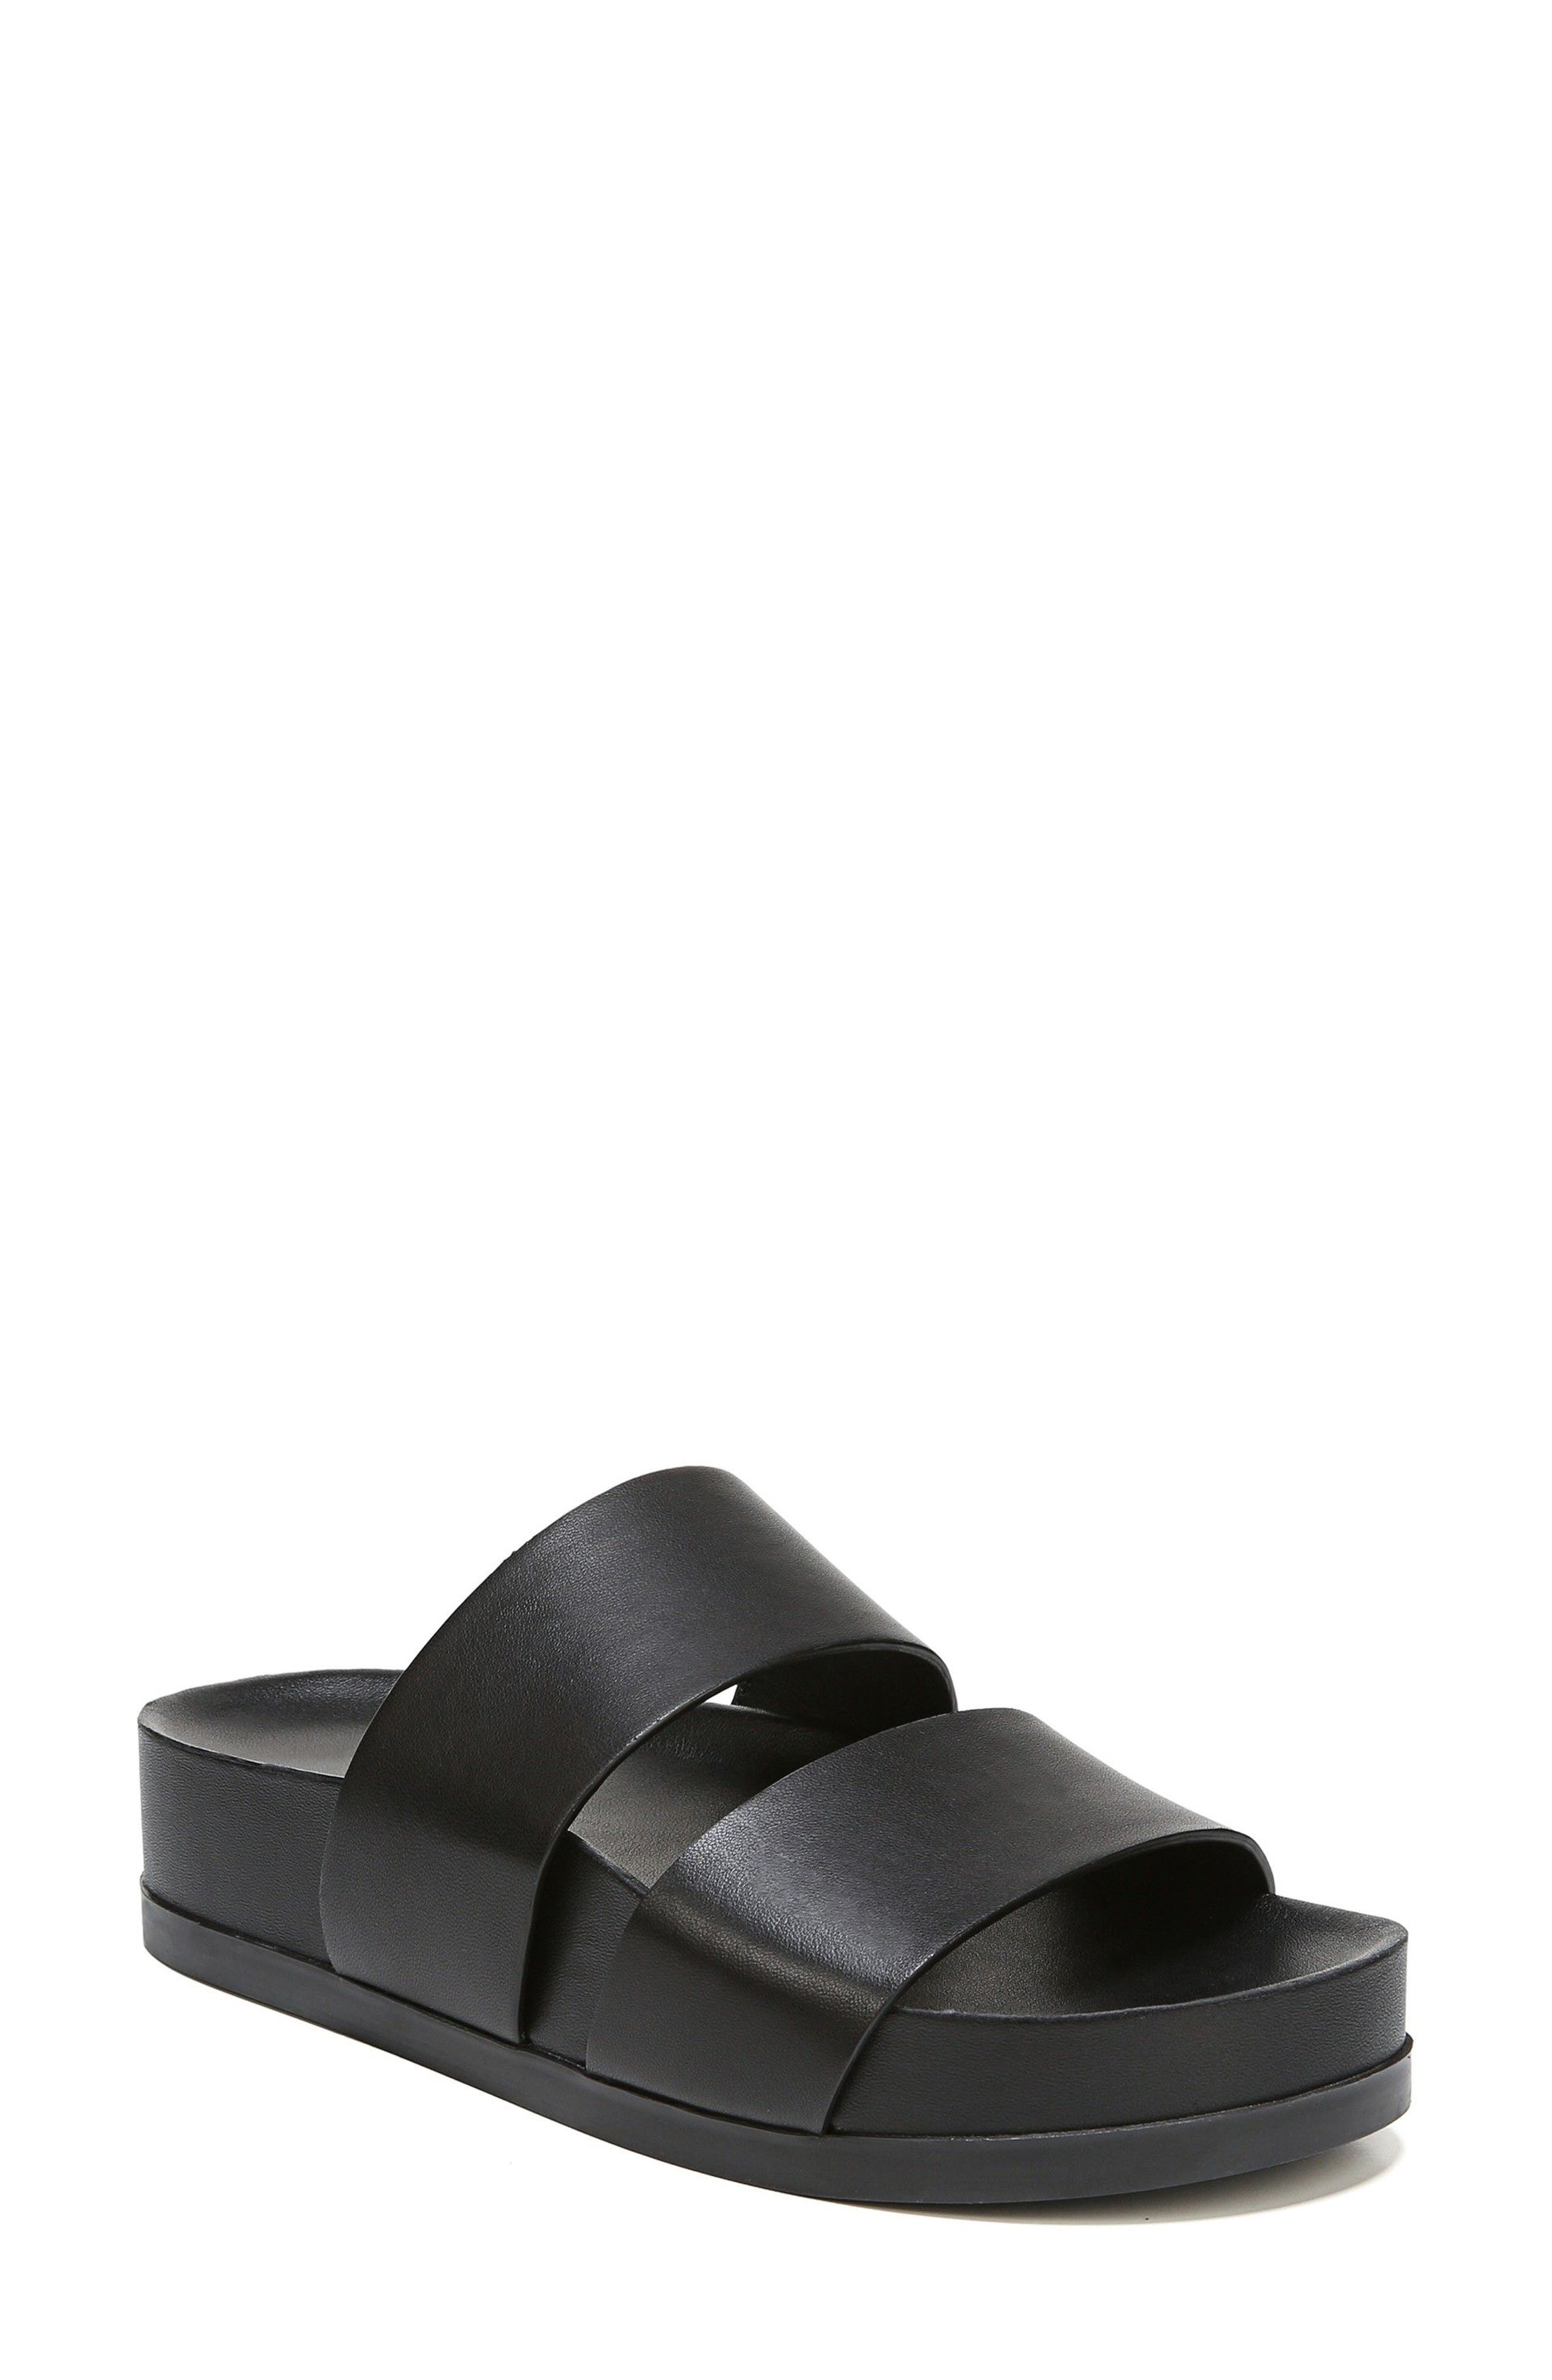 VIA SPIGA Milton Slide Sandal, Main, color, 001